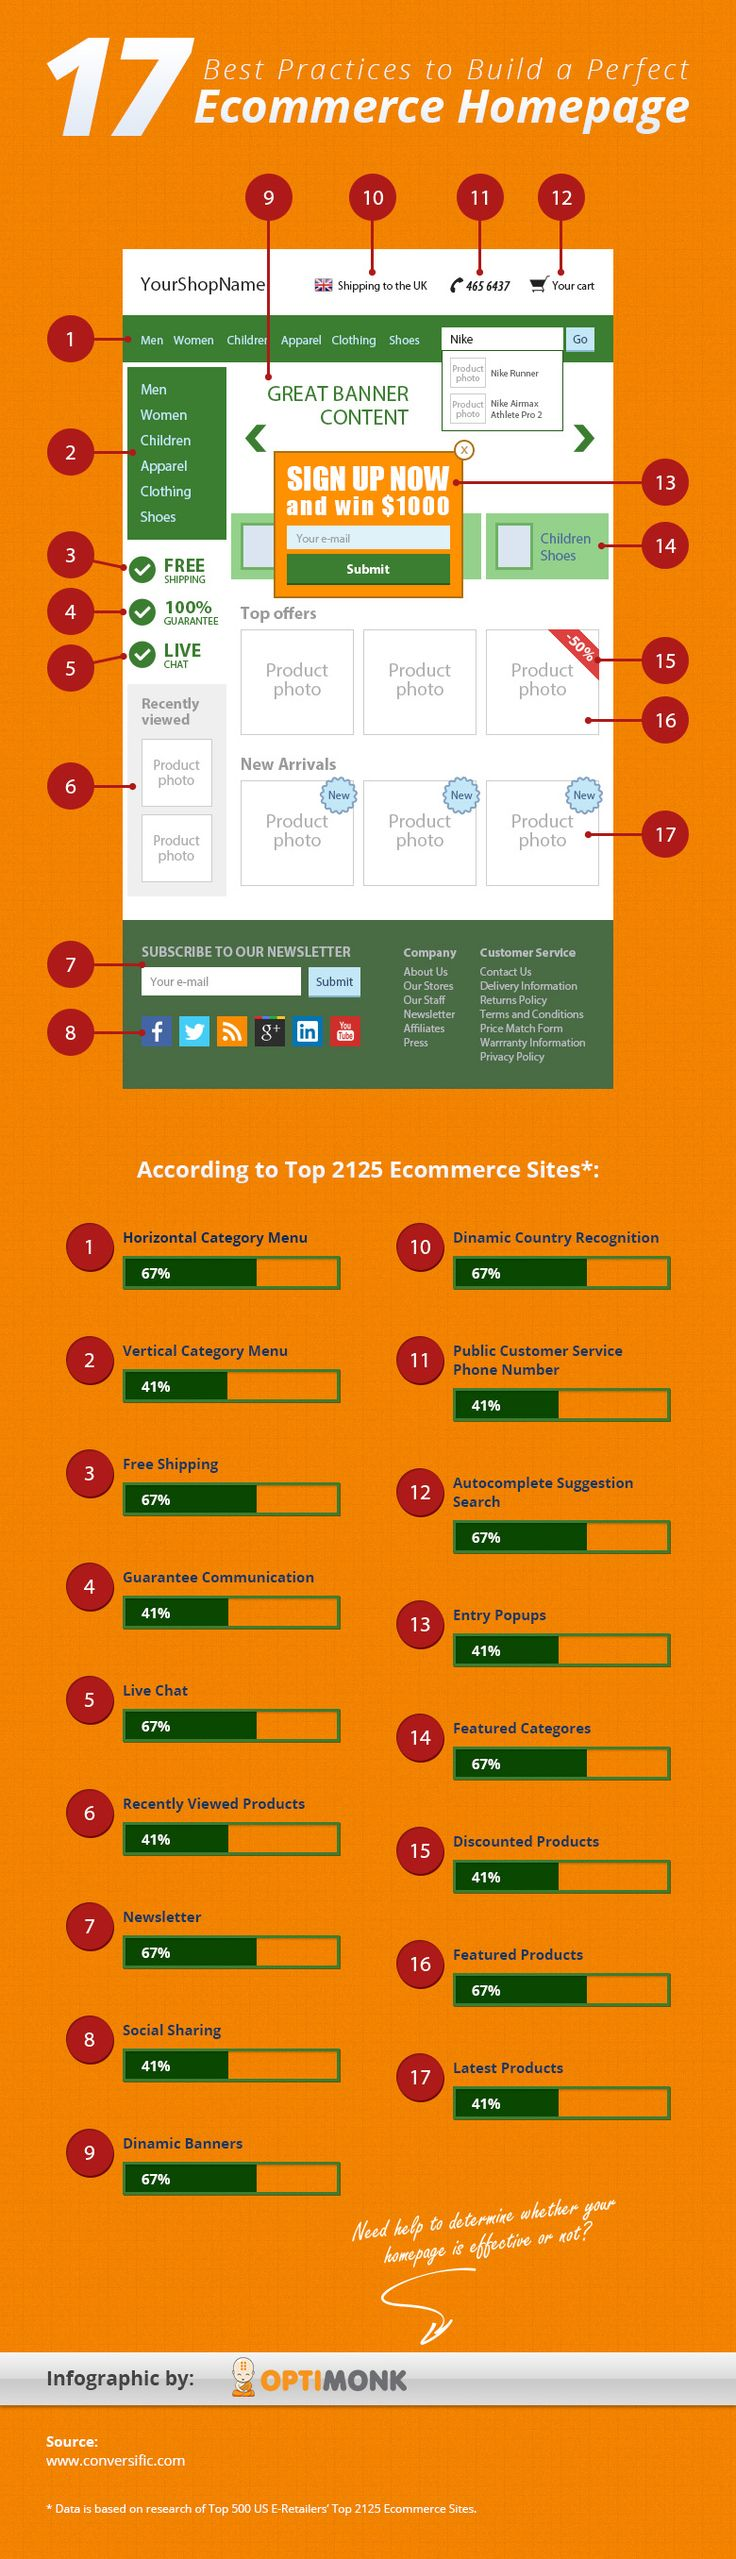 Learn more about #ecommerce and other topics by taking one of our video training courses at A1Courses.com.